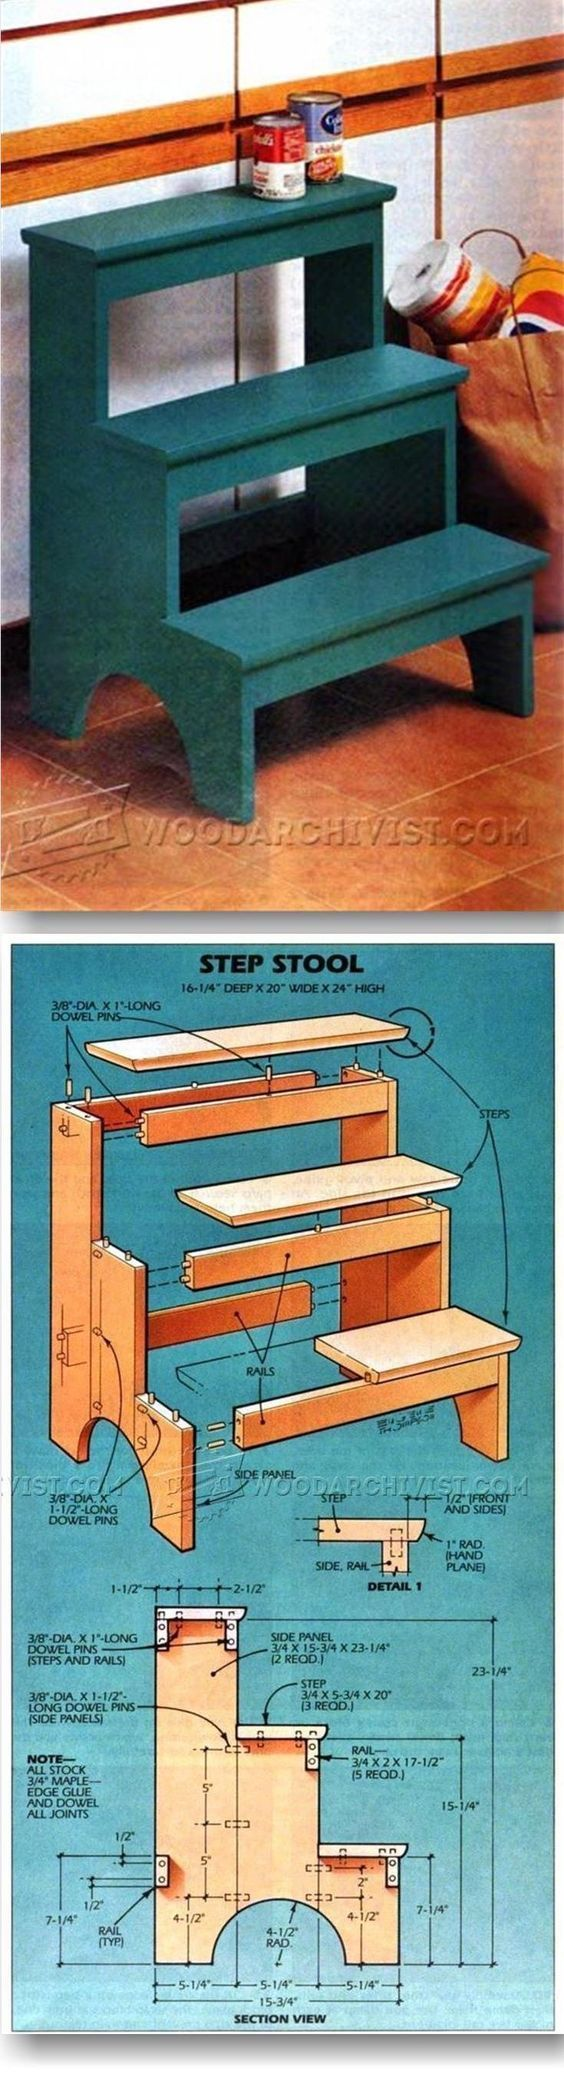 1473 best Wood Projects to Make images on Pinterest   Wood projects ...